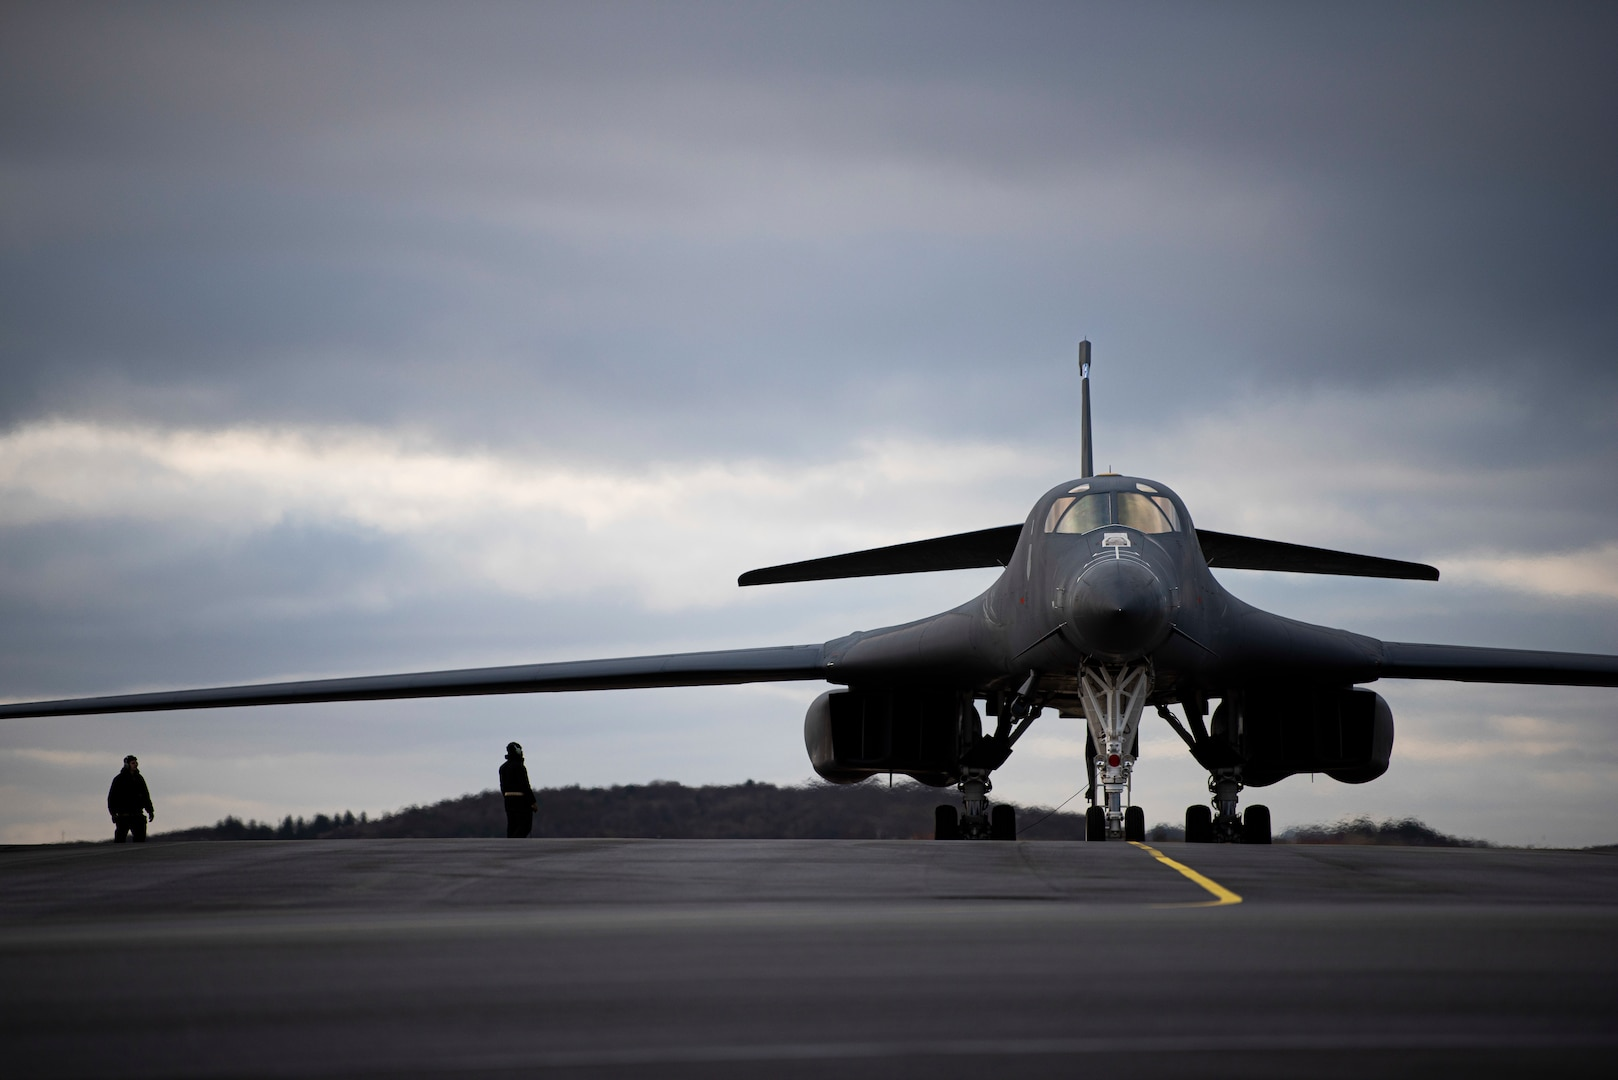 Two crew chiefs assigned to the 9th Aircraft Maintenance Unit stand by a B-1B Lancer on the flightline at Ørland Air Force Station, Norway, Feb. 26, 2021. B-1 crew chiefs provide aircraft maintenance necessary to ensure Bomber Task Force mission success. (U.S. Air Force photo by Airman 1st Class Colin Hollowell)